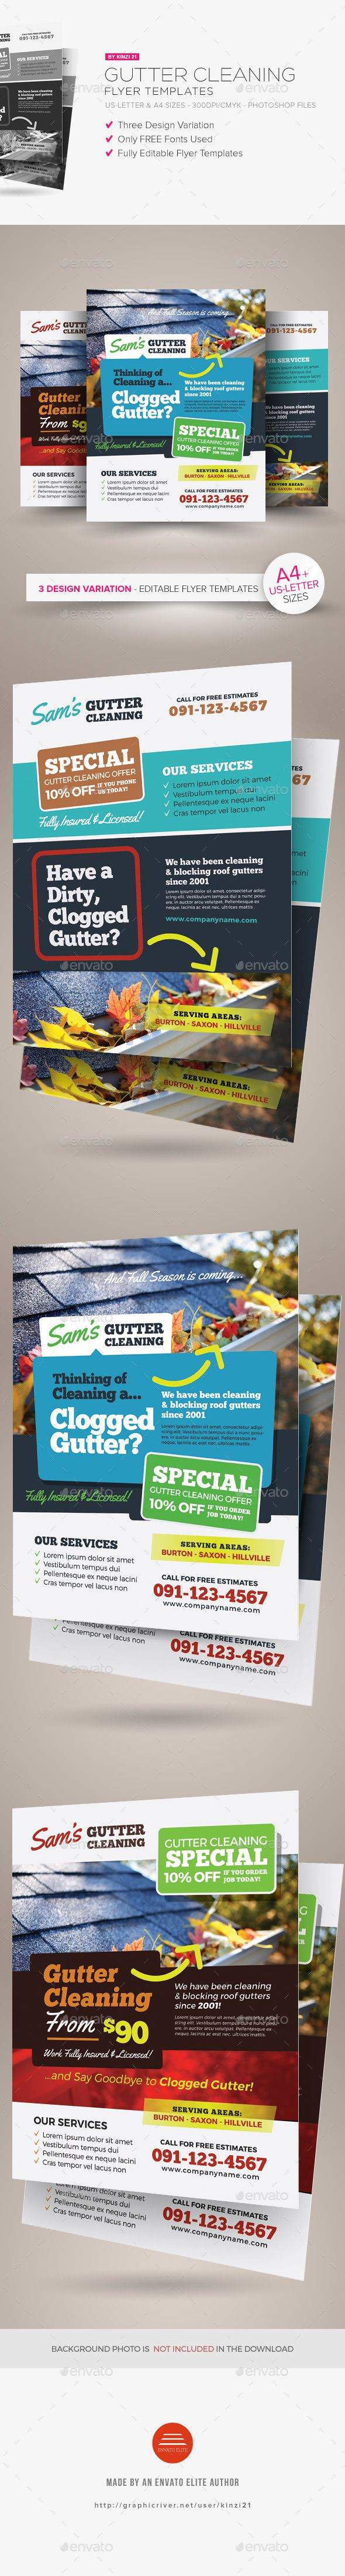 Pin By Kinzi Wij On Flyer Templates Cleaning Flyers